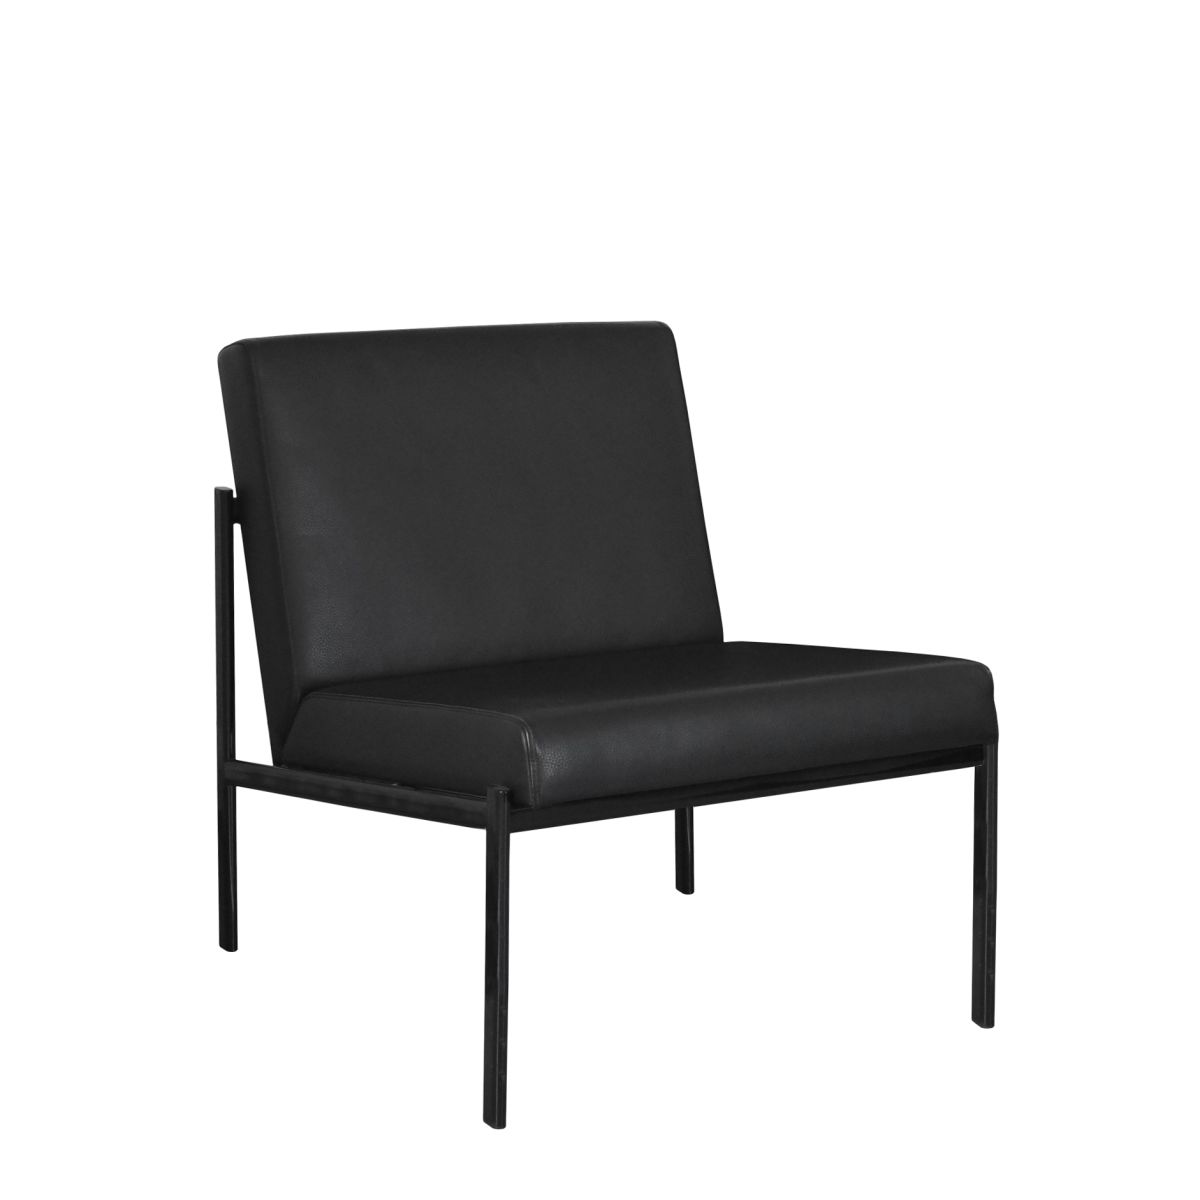 Kiki-Lounge-Chair-black-leather-upholstery-2931939